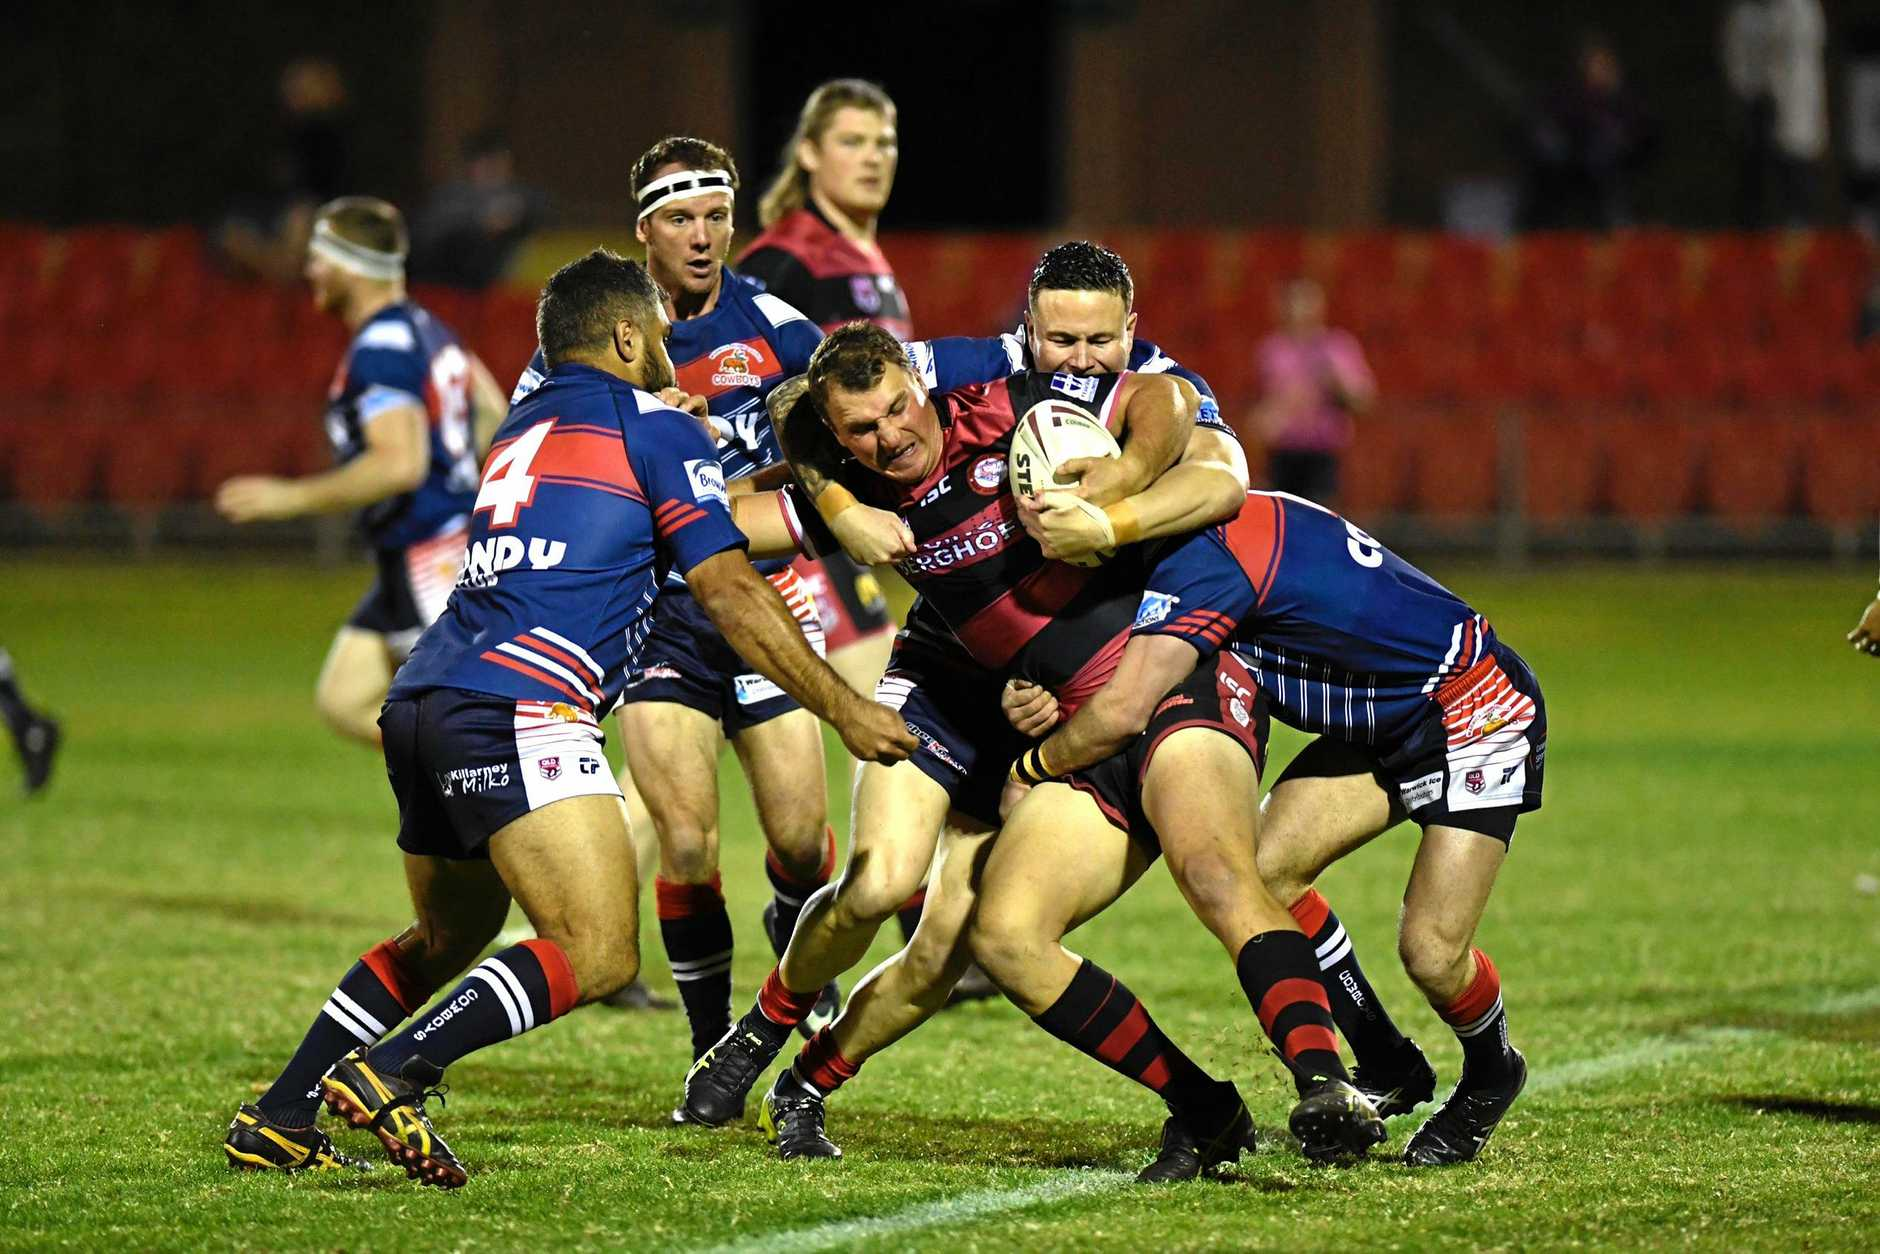 Valleys winger Aaron Sillitoe is met with a brick wall of defence from a number of Warwick Cowboys players.